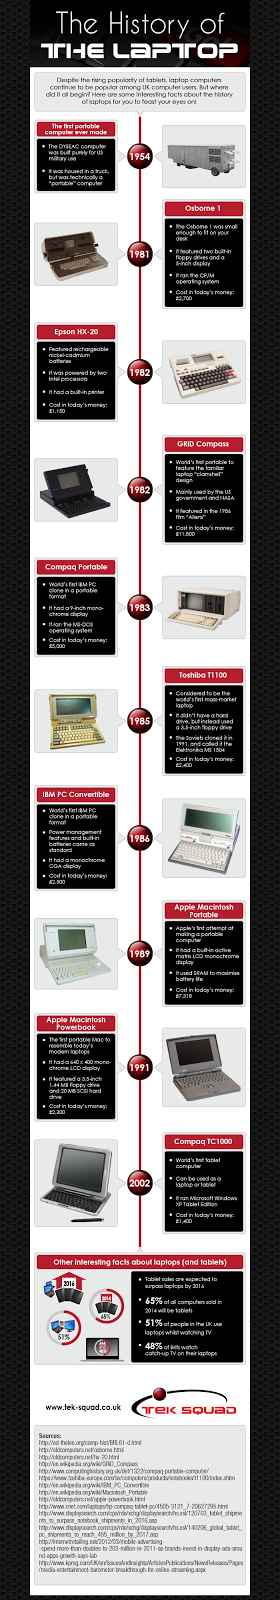 http://tek-squad.co.uk/wp-content/uploads/2014/02/History-of-the-laptop-infographic.png